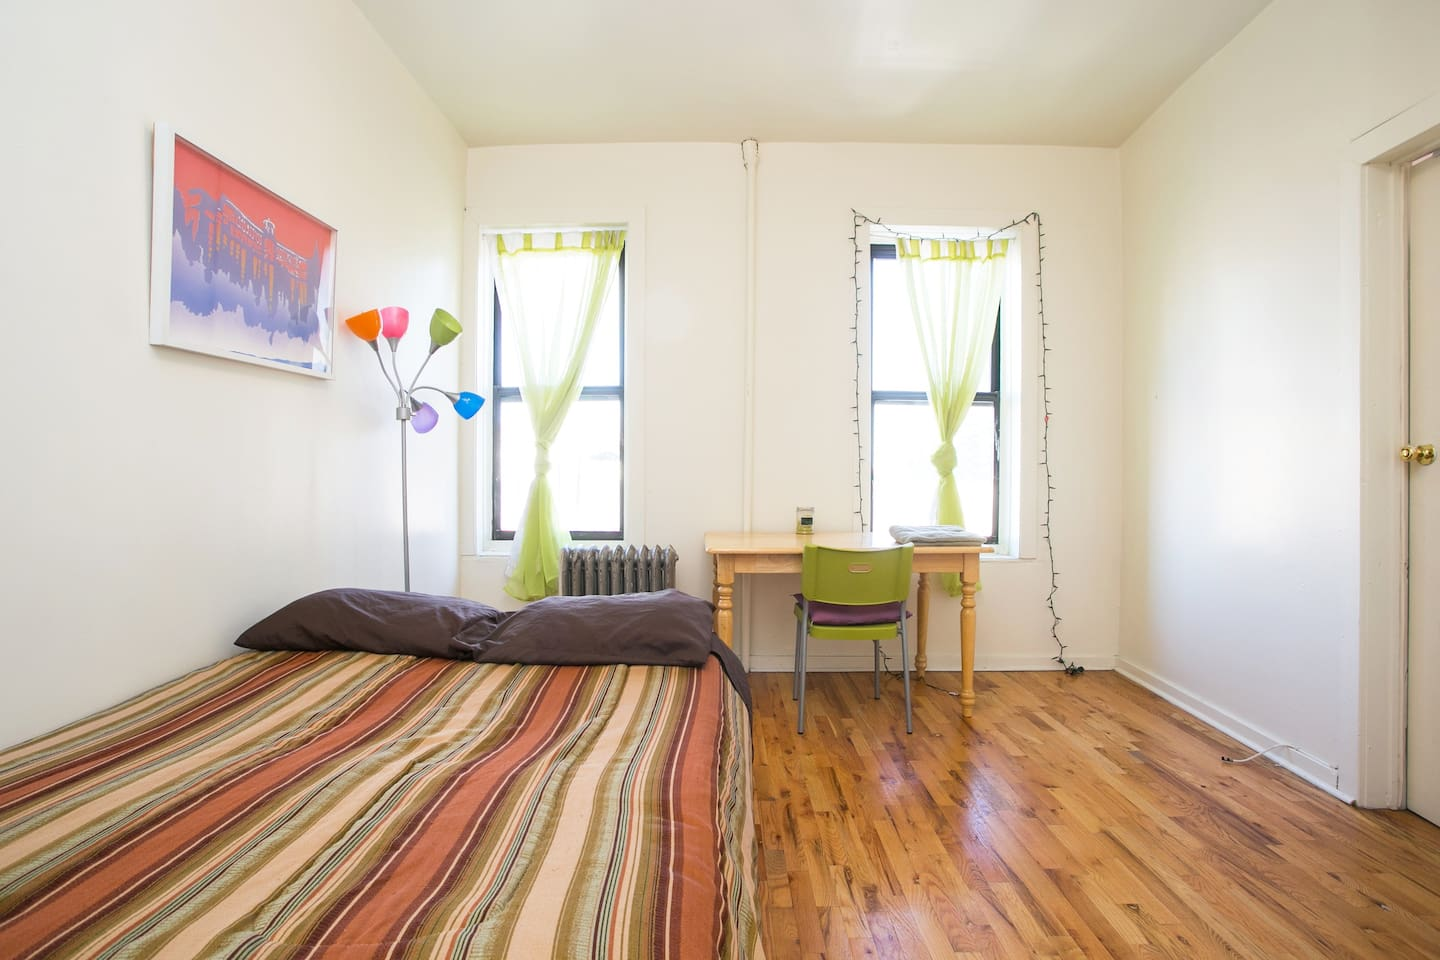 Lovely, clean, bright and spacious room. Plenty of room for 2 people.